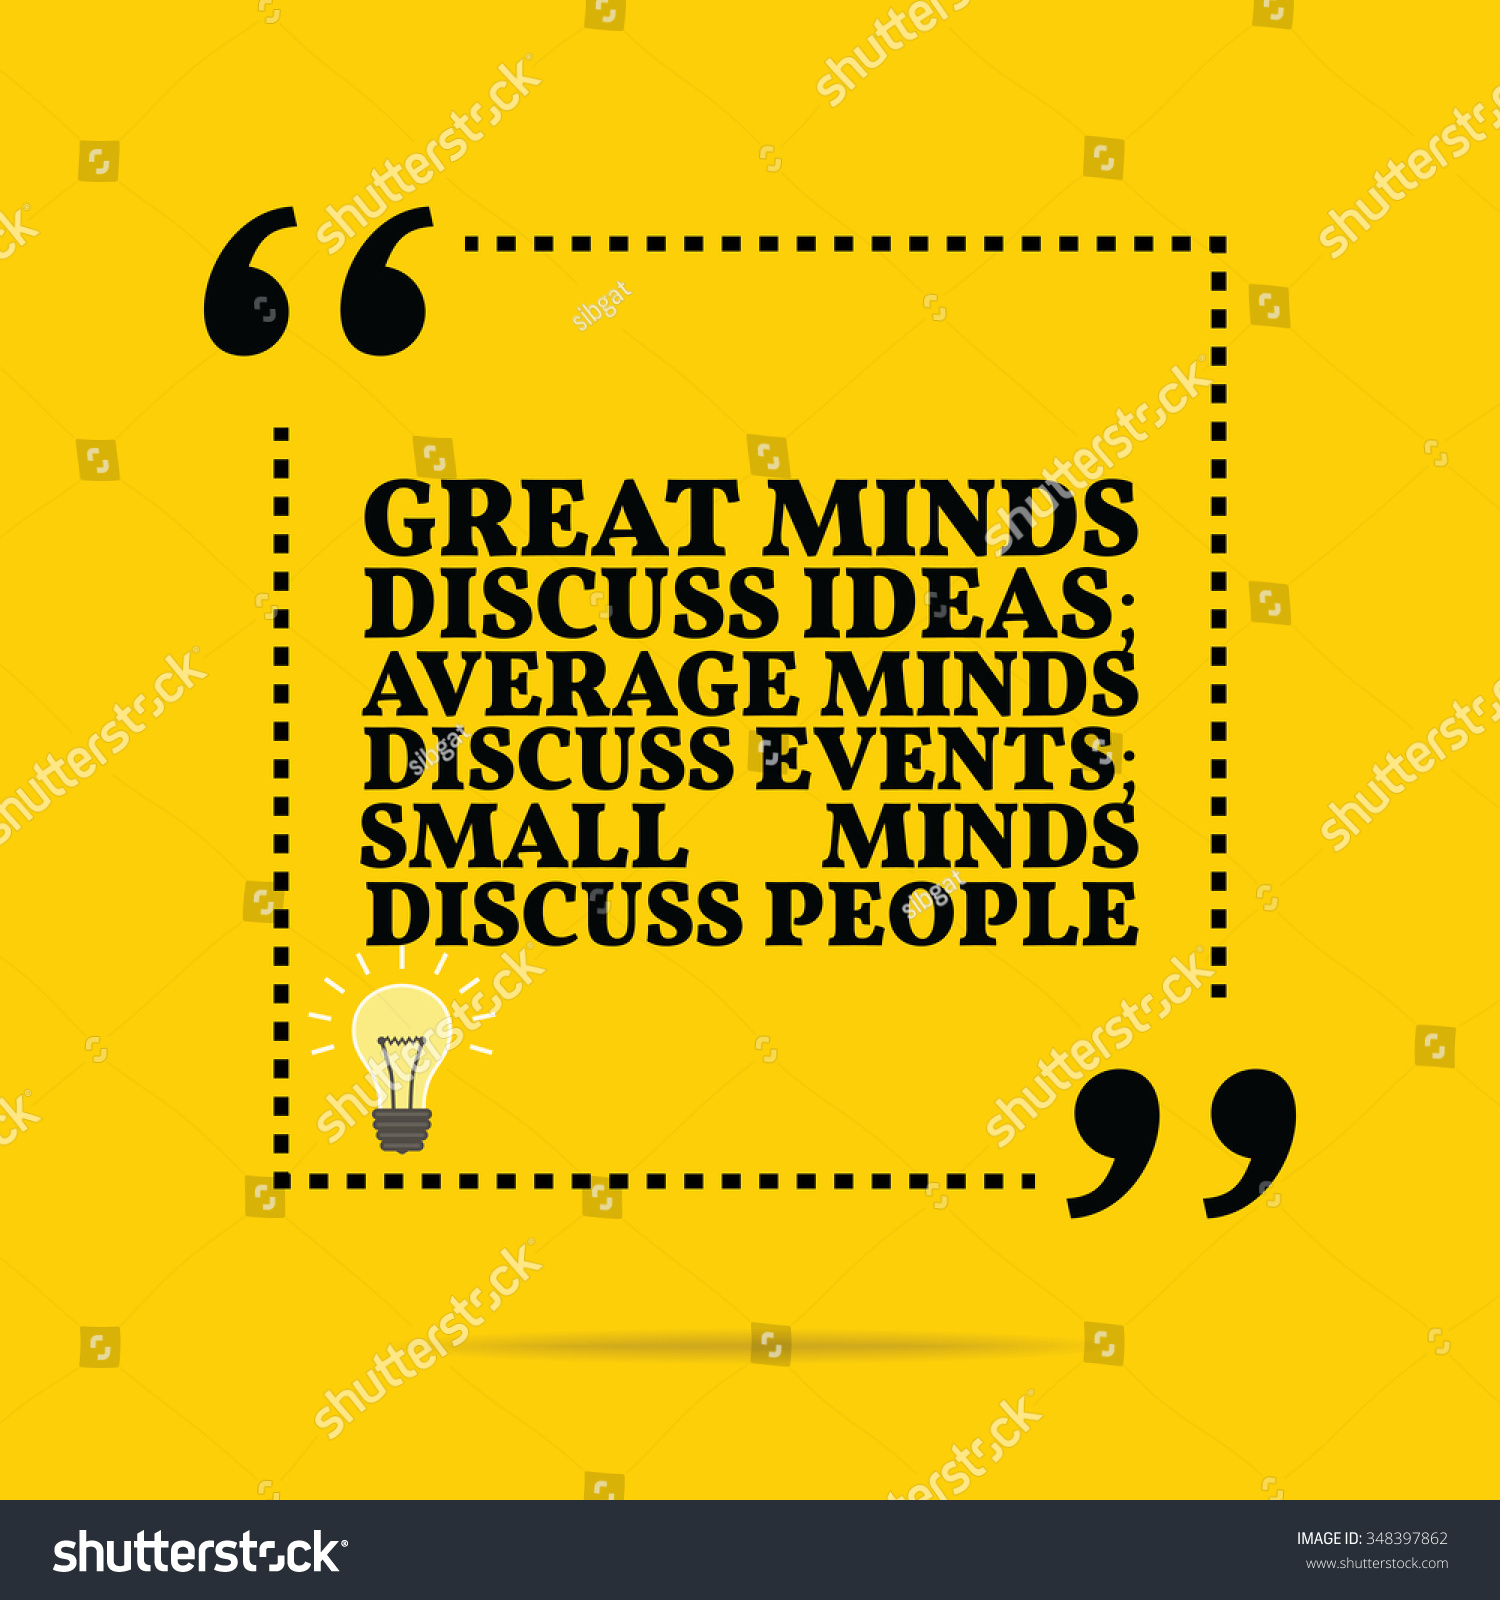 Small Minds Discuss People Quote: Inspirational Motivational Quote. Great Minds Discuss